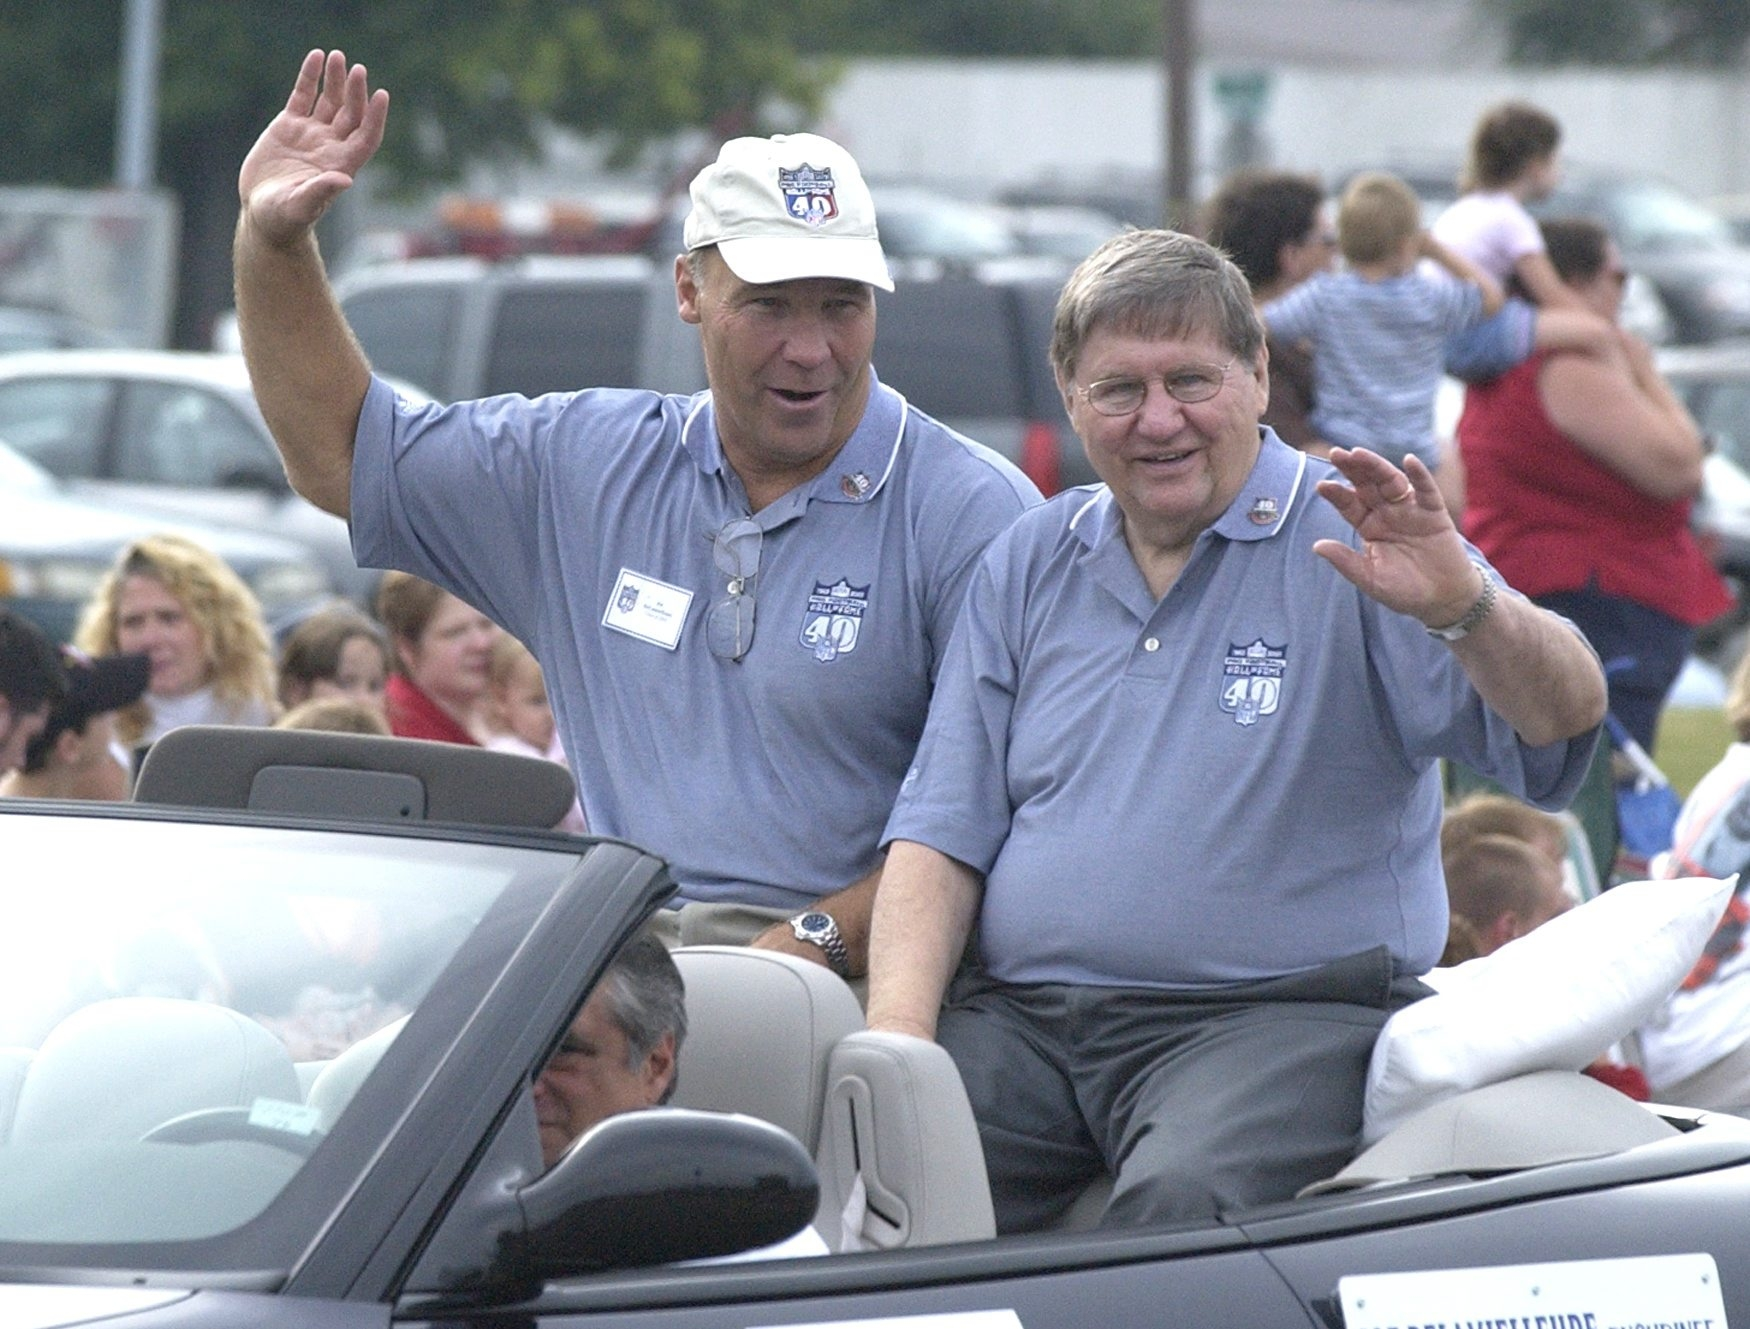 Joe DeLamielleure, left, a member of the Pro Football Hall of Fame's 2003 class, and presenter Larry Felser ride along the Hoover Grand Parade route in Canton, Ohio. Felser covered the Bills from the AFL's inception to retirement.